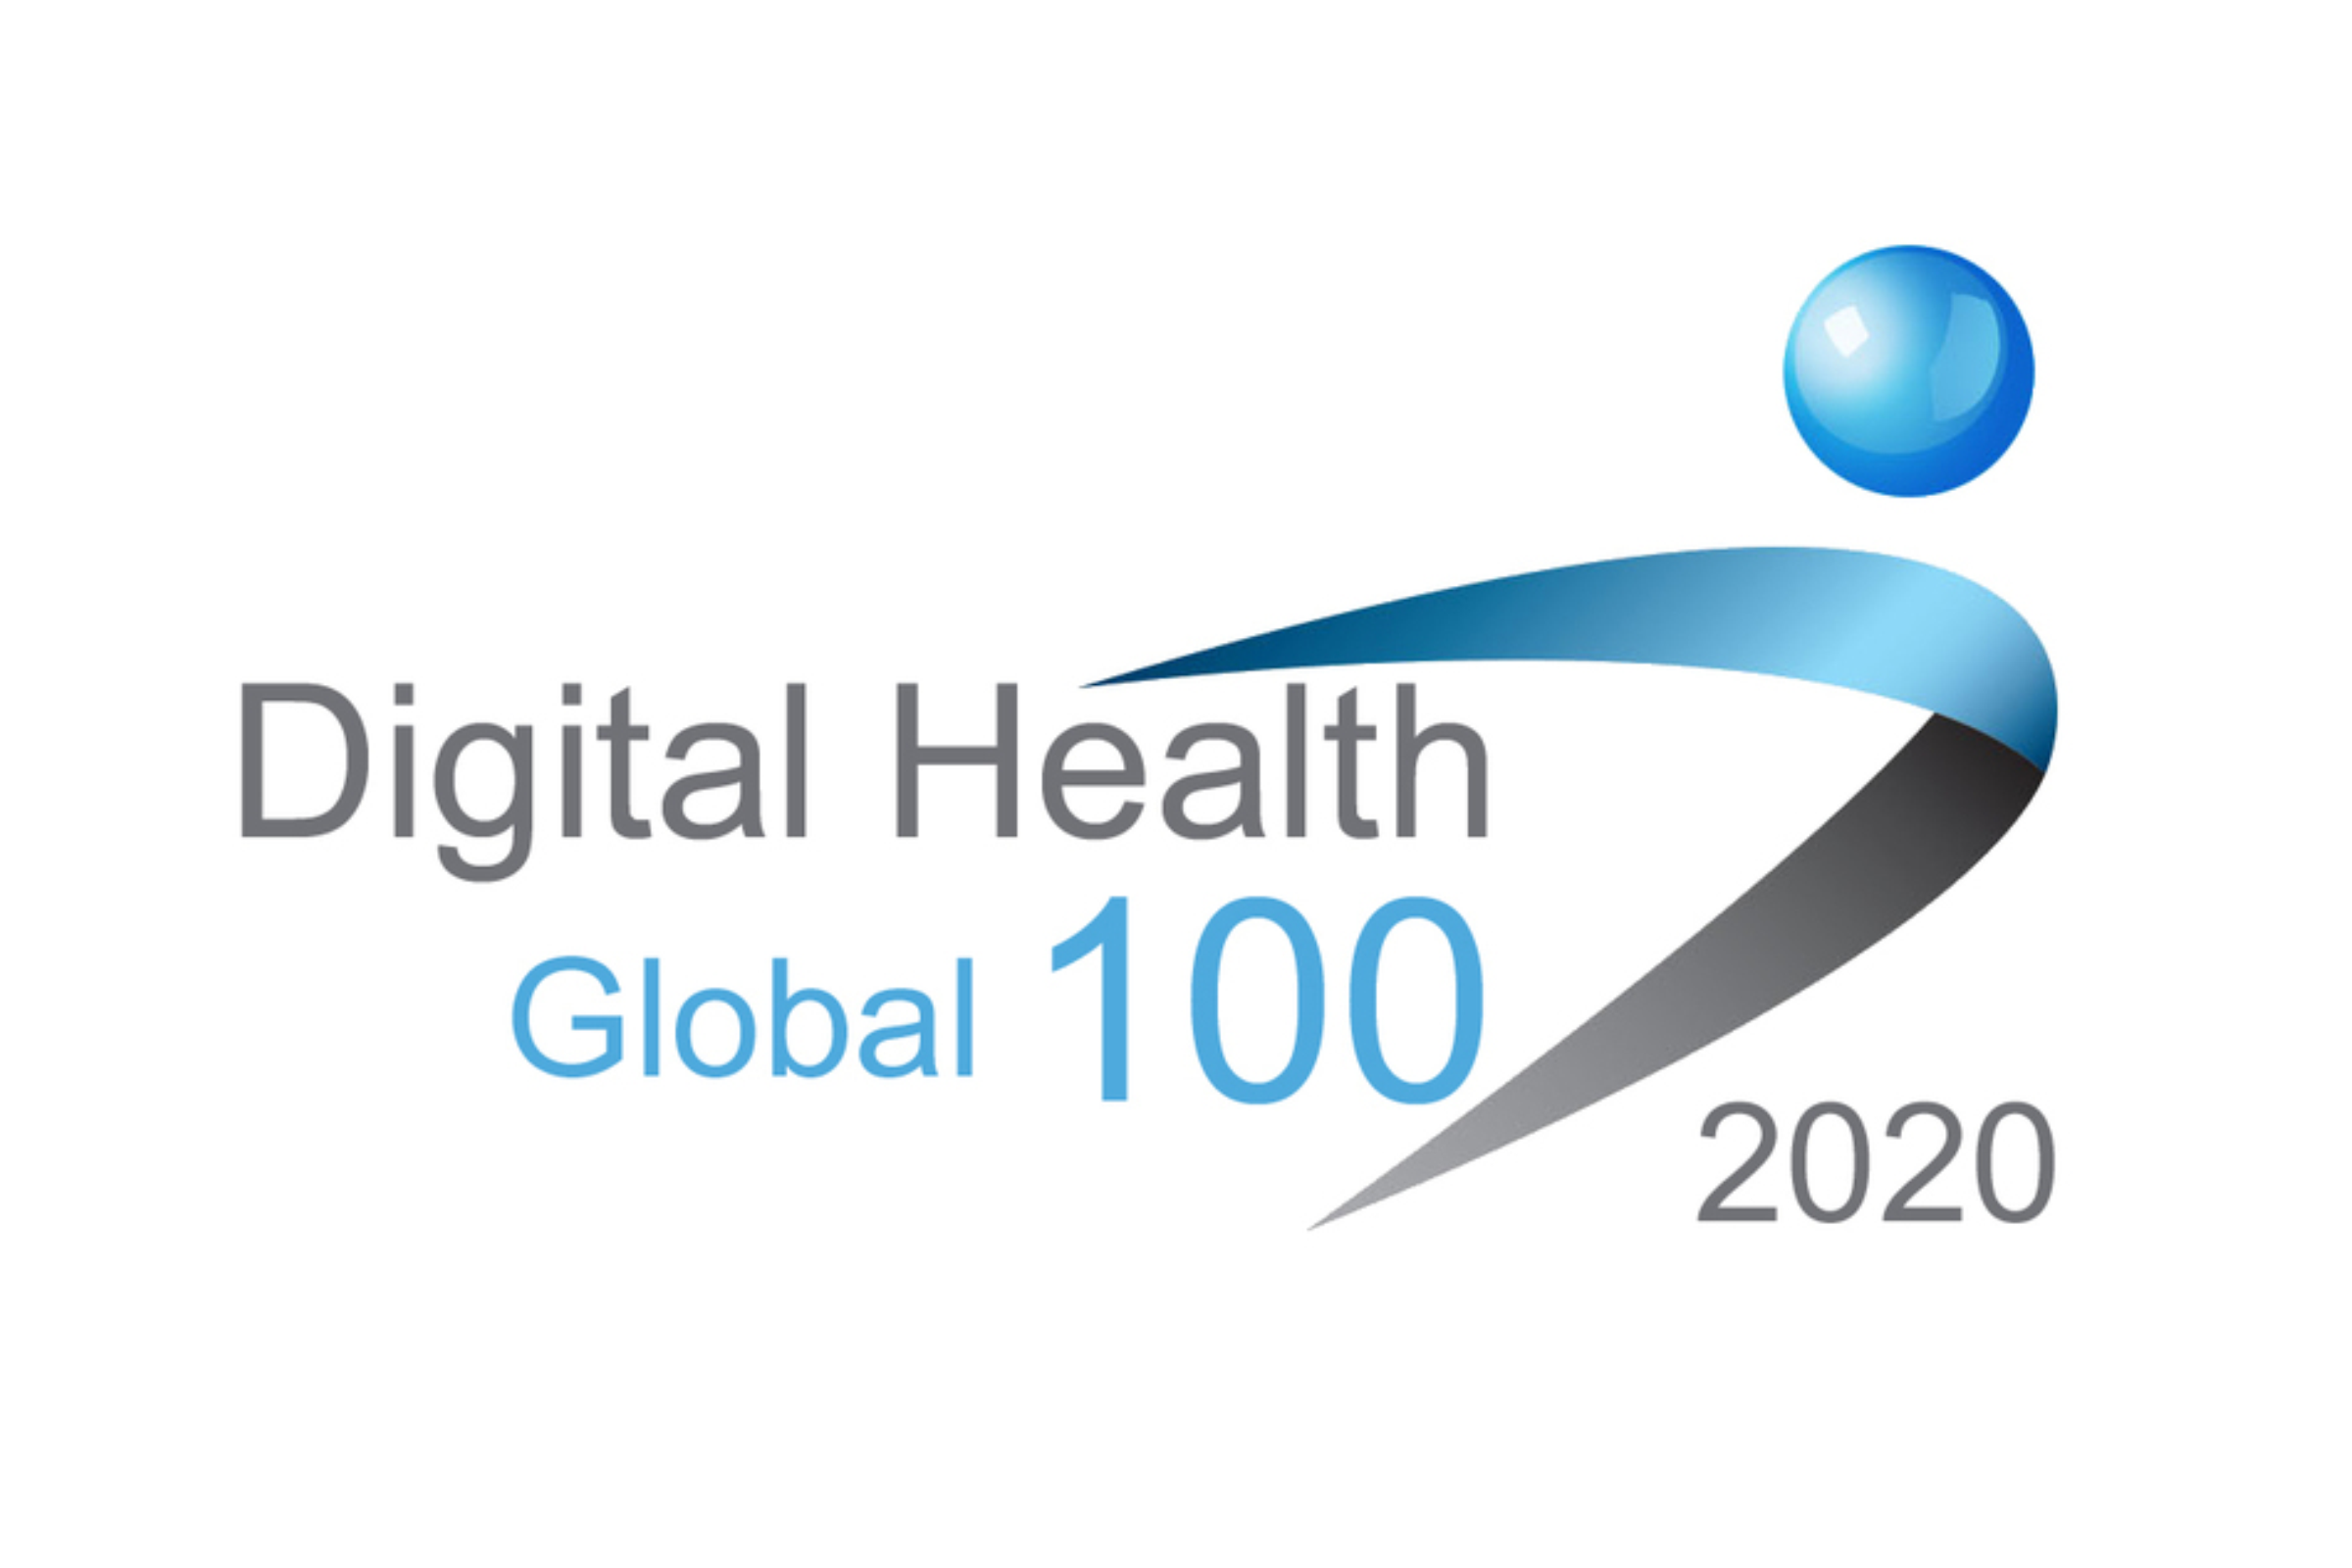 Digital Health 100